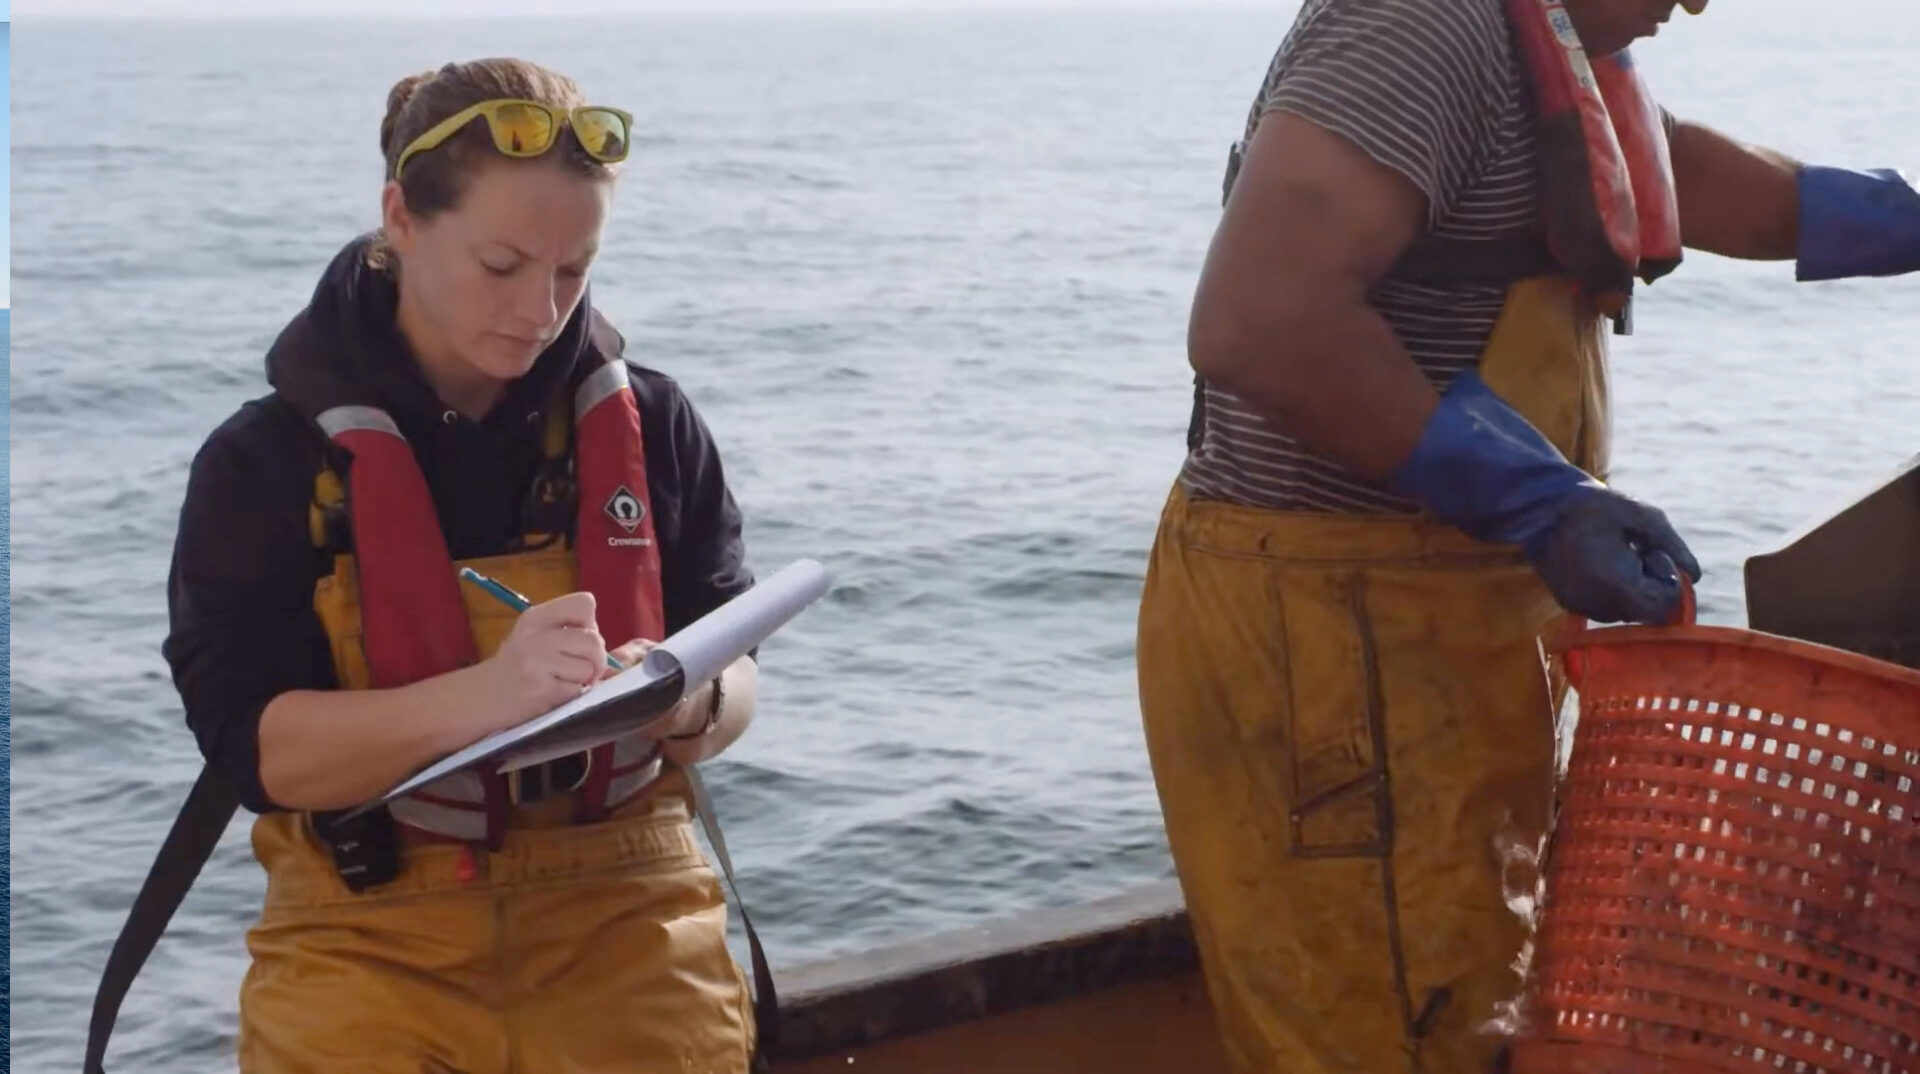 5G Aquaculture Video Monitoring System to be deployed in Dorset